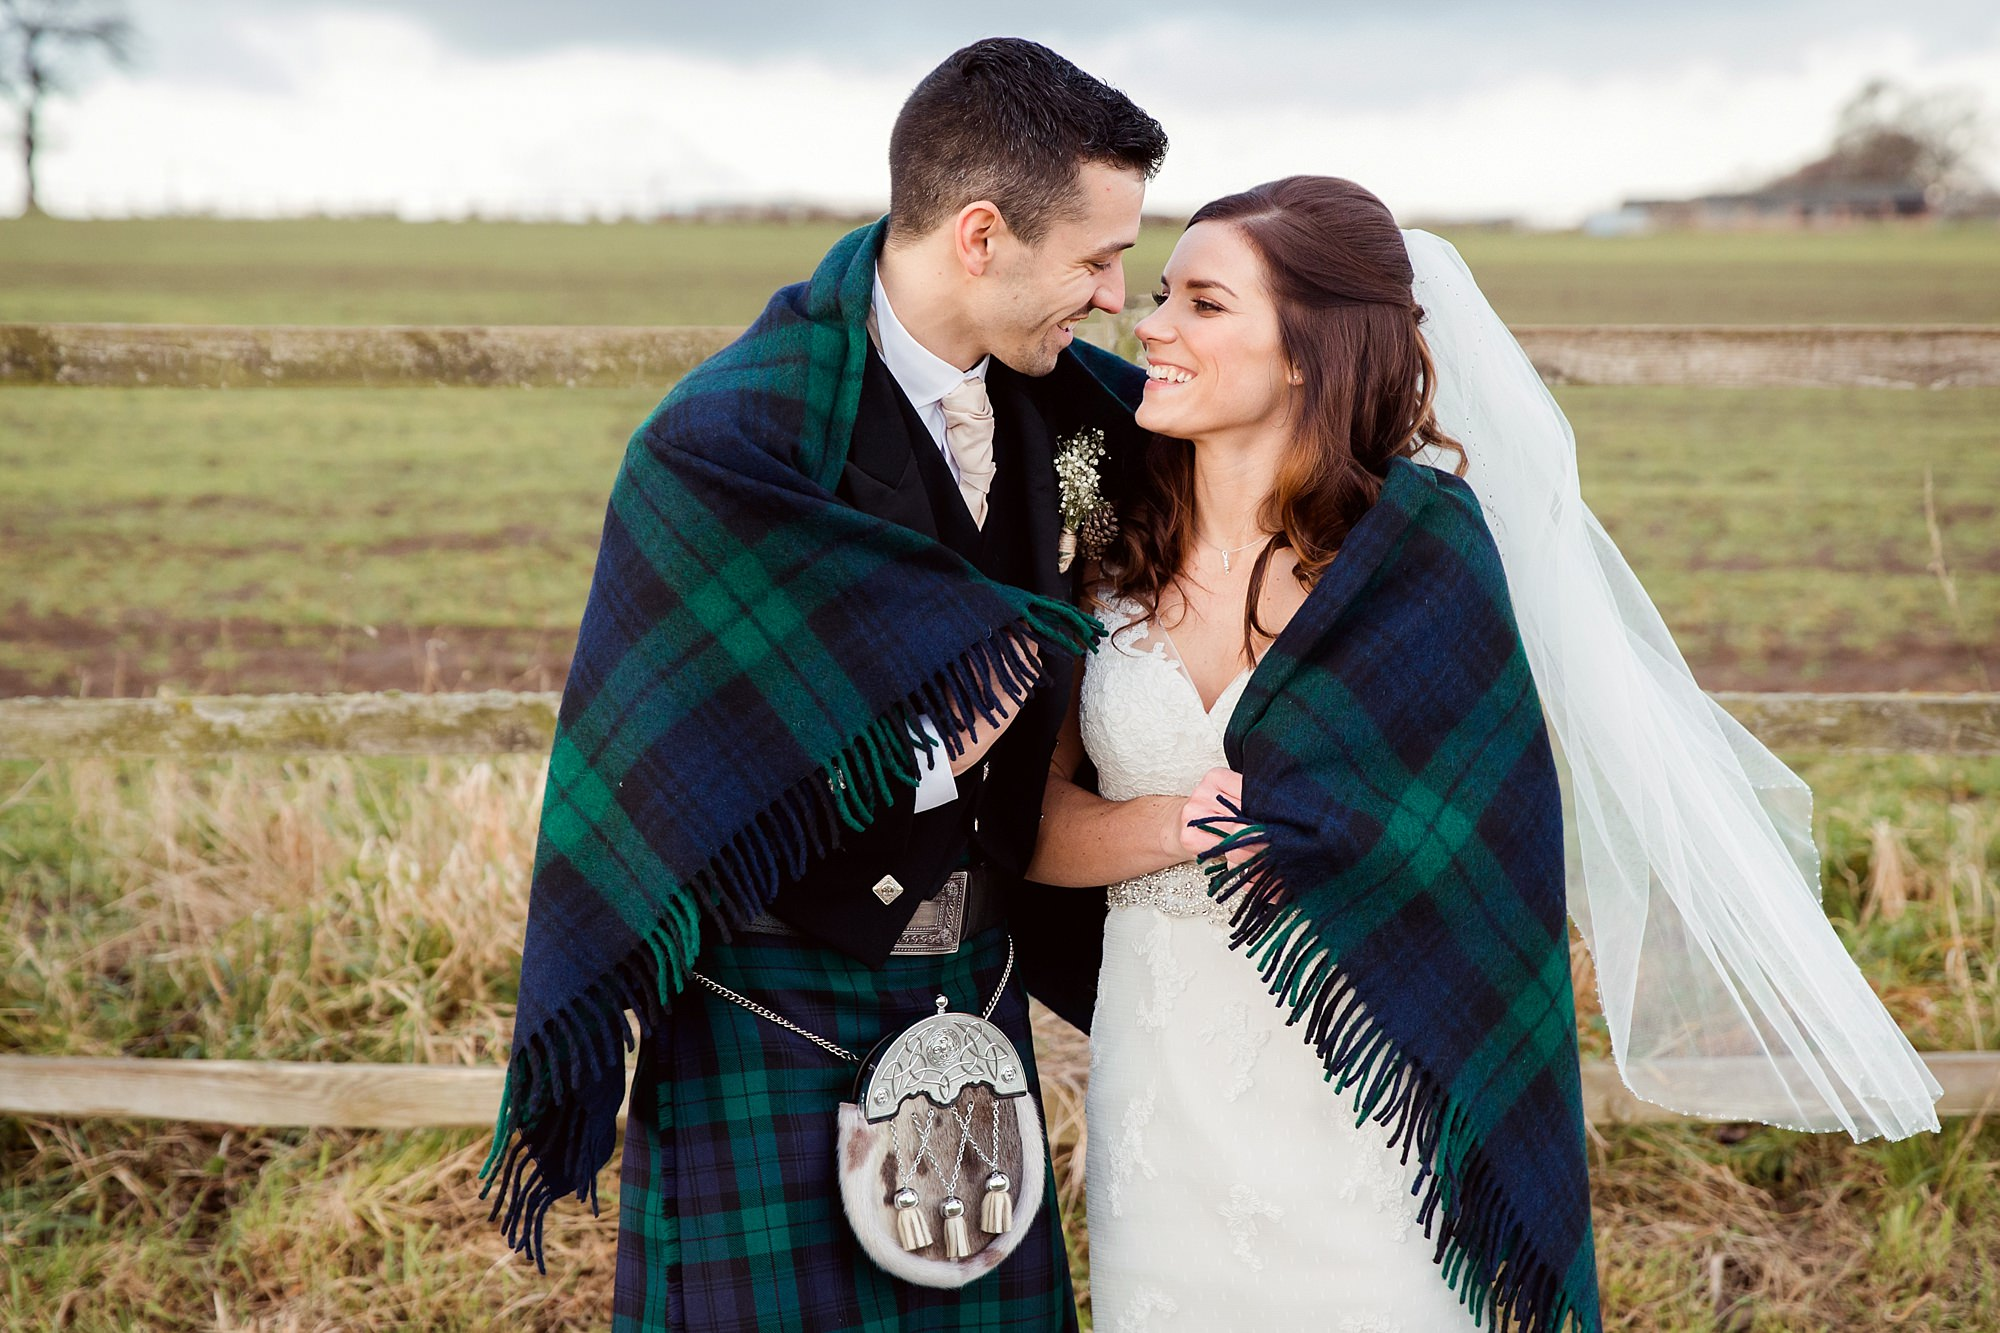 swancar farm wedding photography bride and groom with tartan shawl